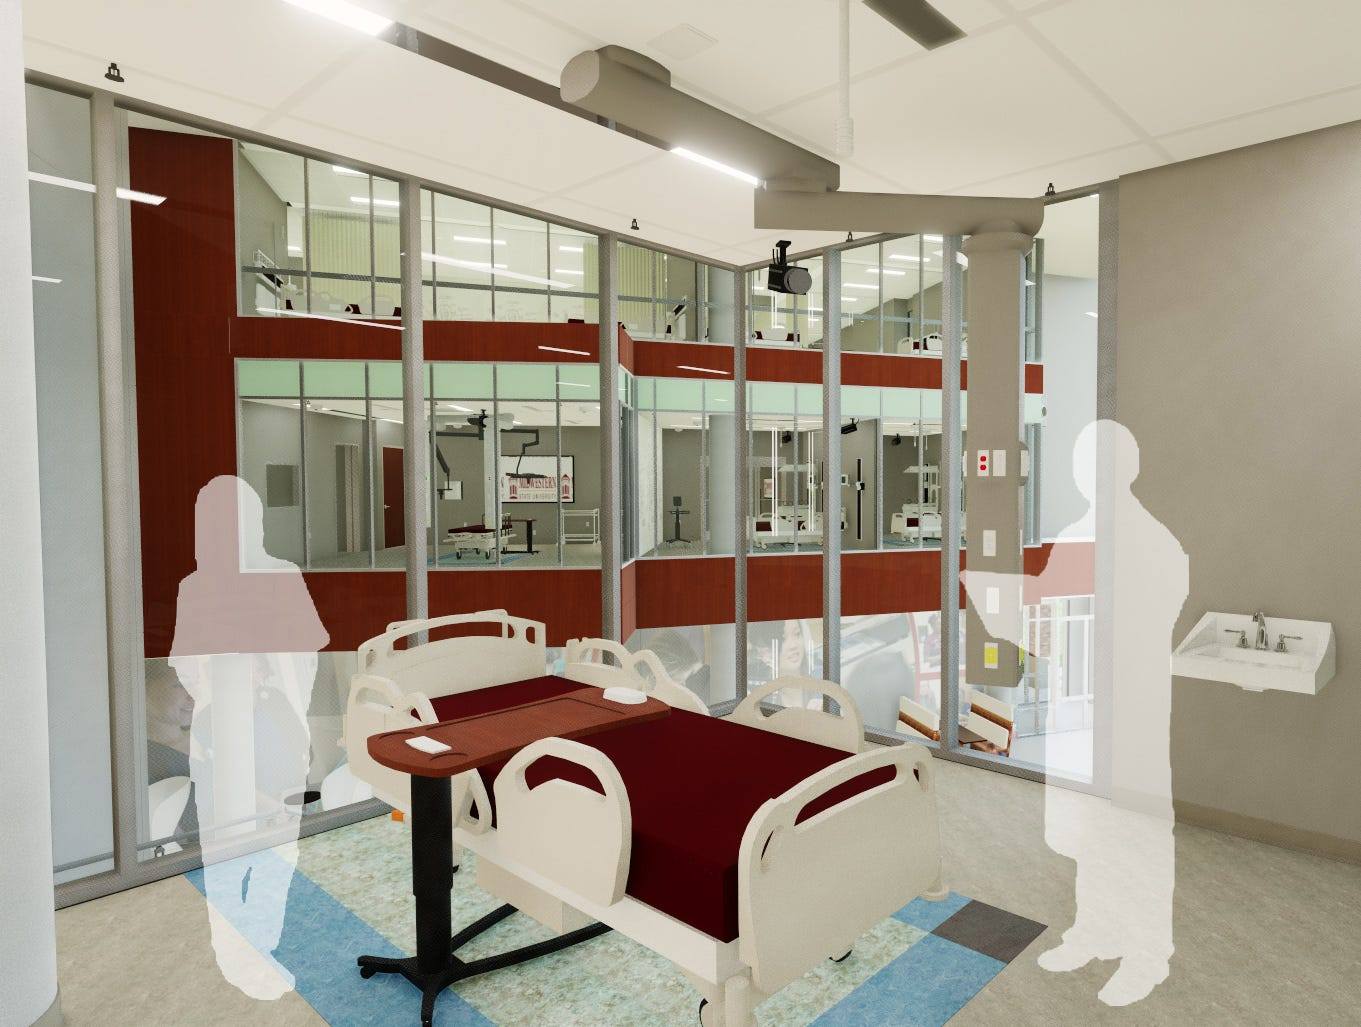 An artist's rendering of a simulation room in the Midwestern State University Health Sciences and Human Services building currently under construction.